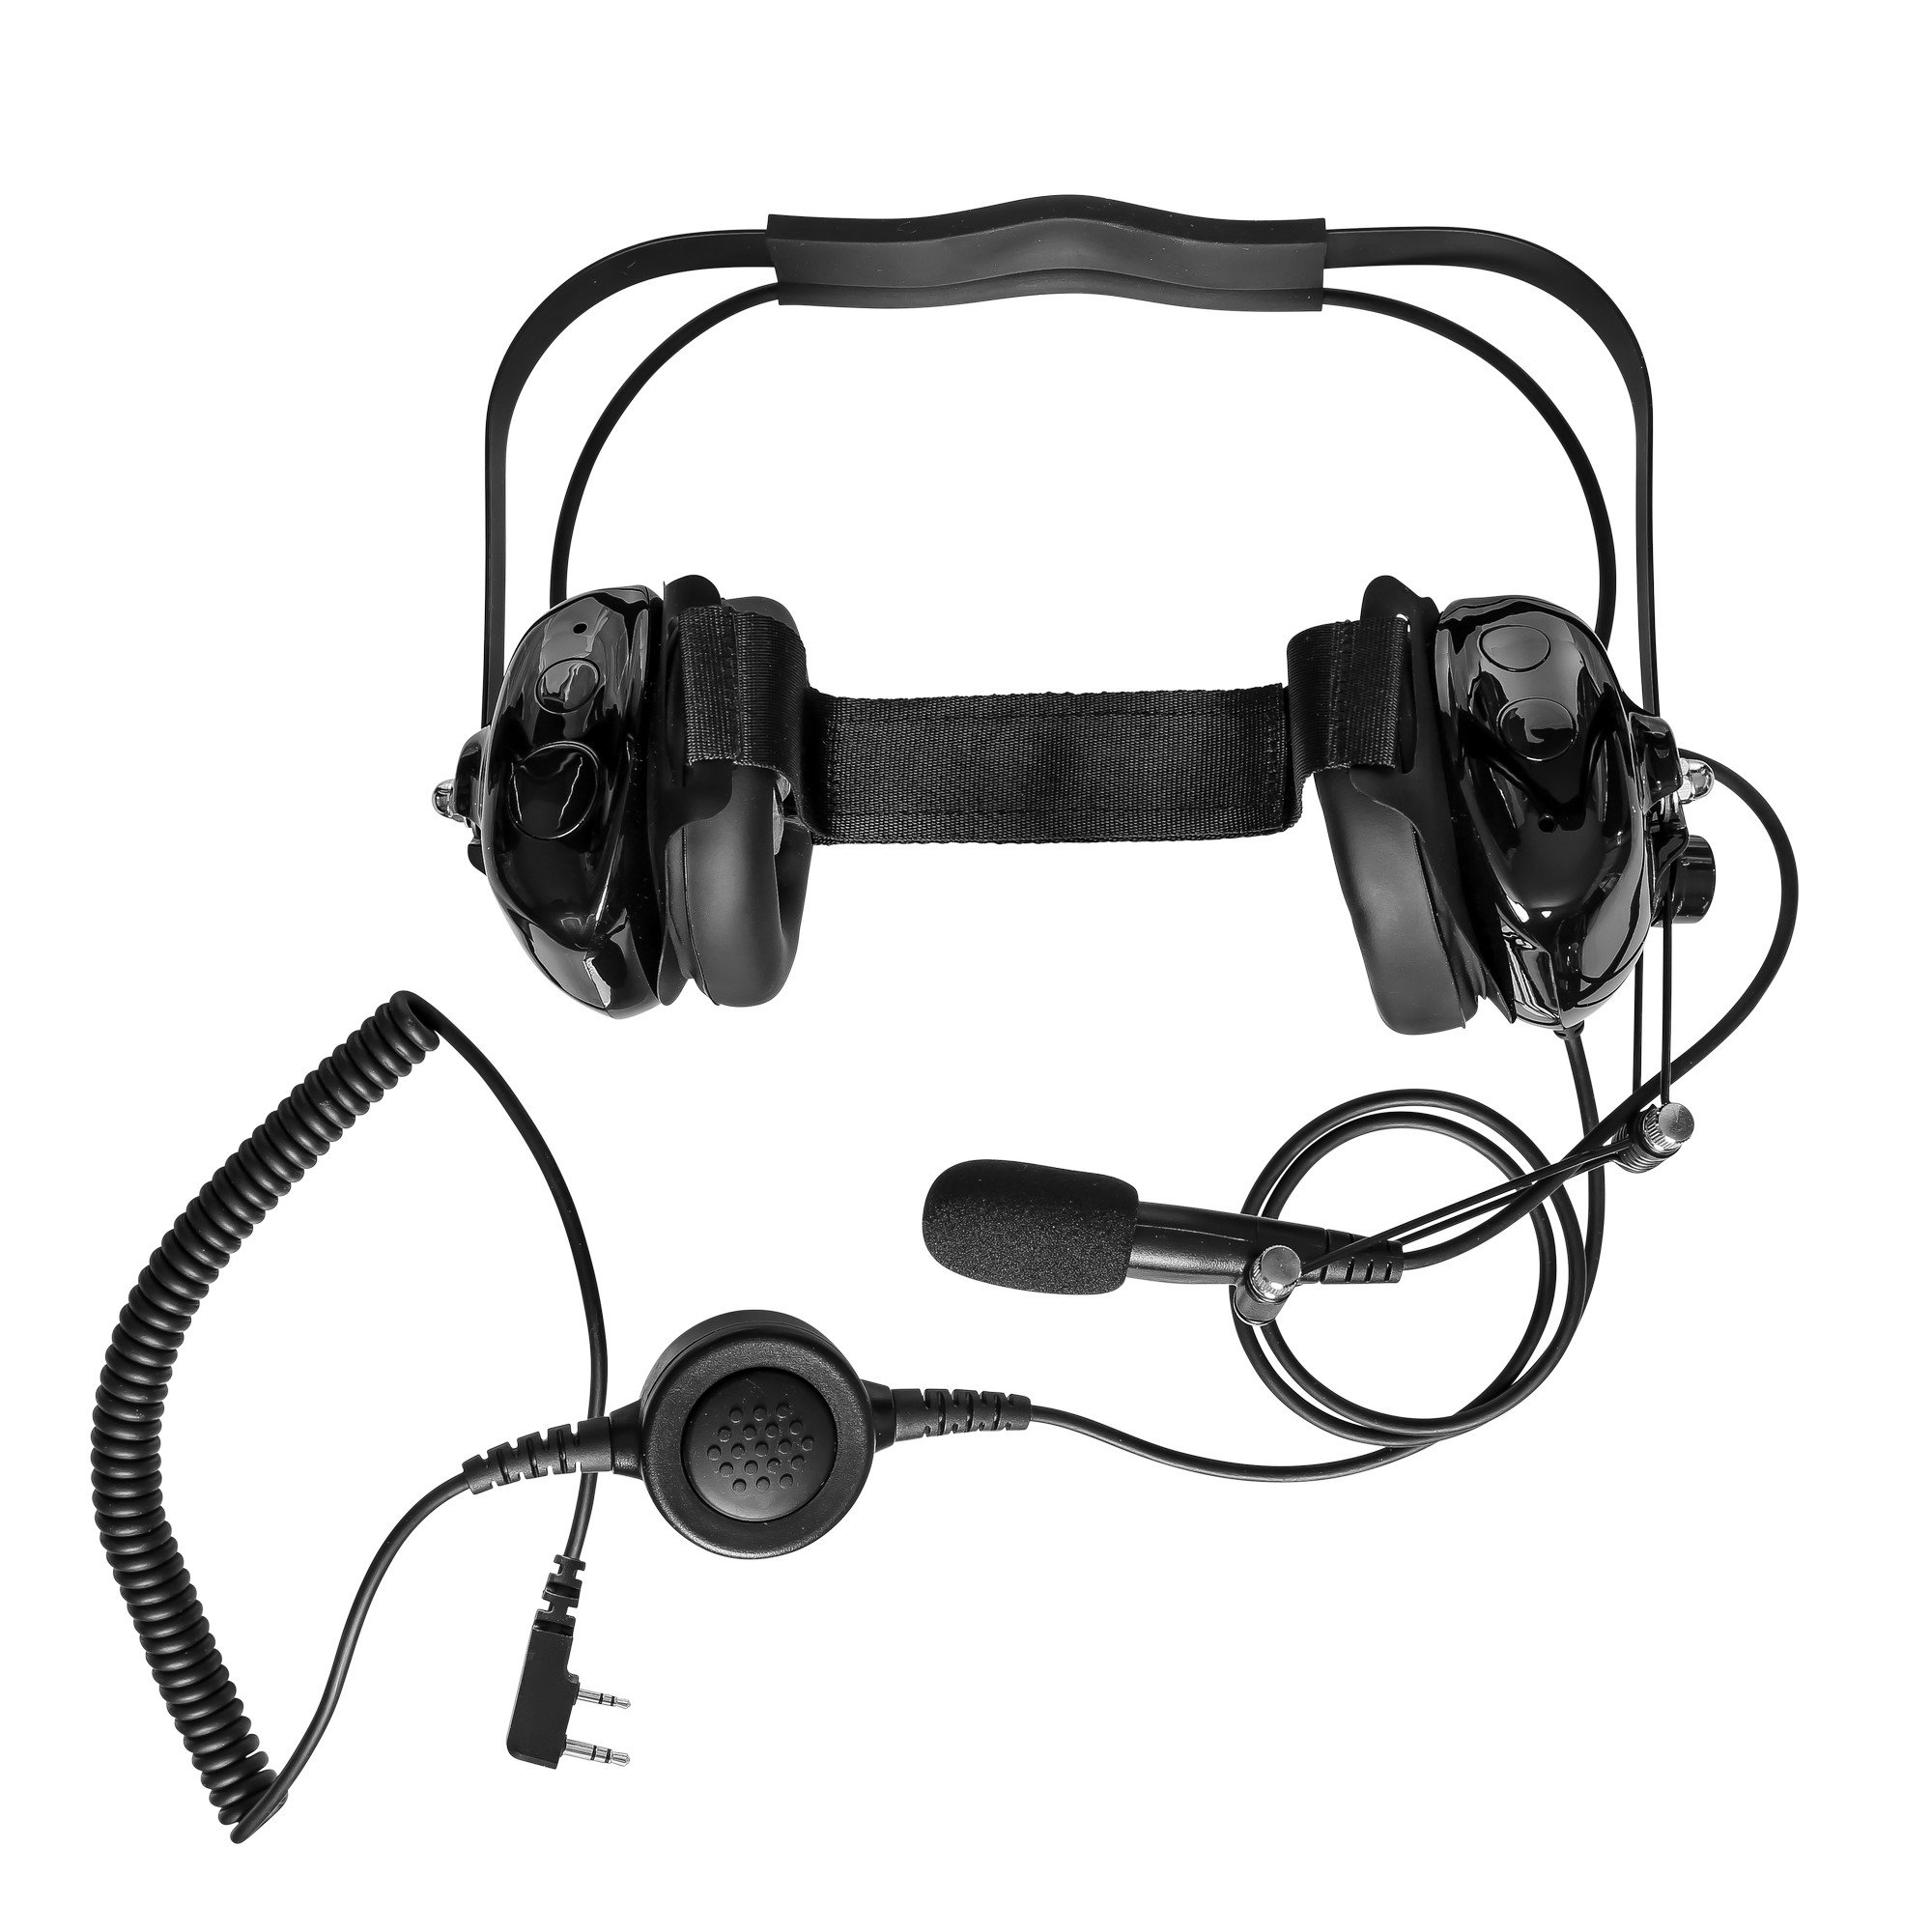 Maxtop AHDH0032-BK-K2B Two Way Radio Noise Cancelling Headset for Baofeng BF-F8HP UV-5R+ UV-82HP UV-82L BF-777